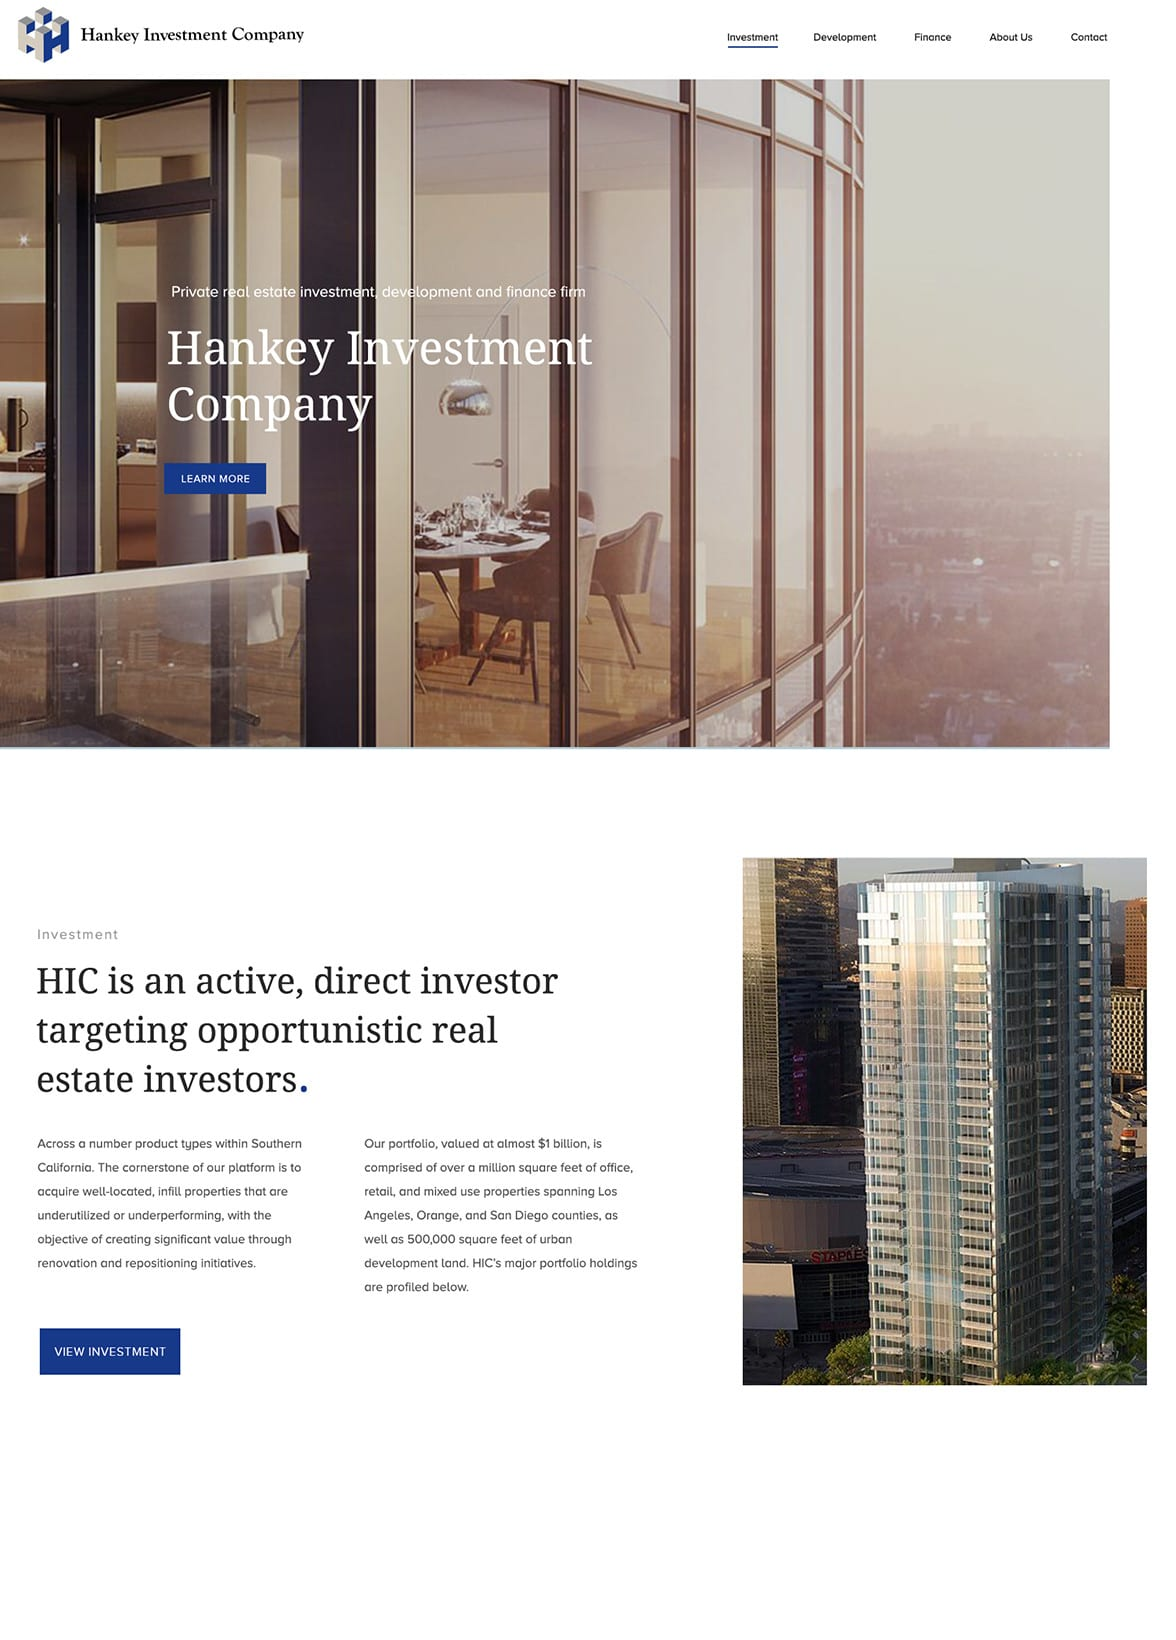 Hankey Investment Company